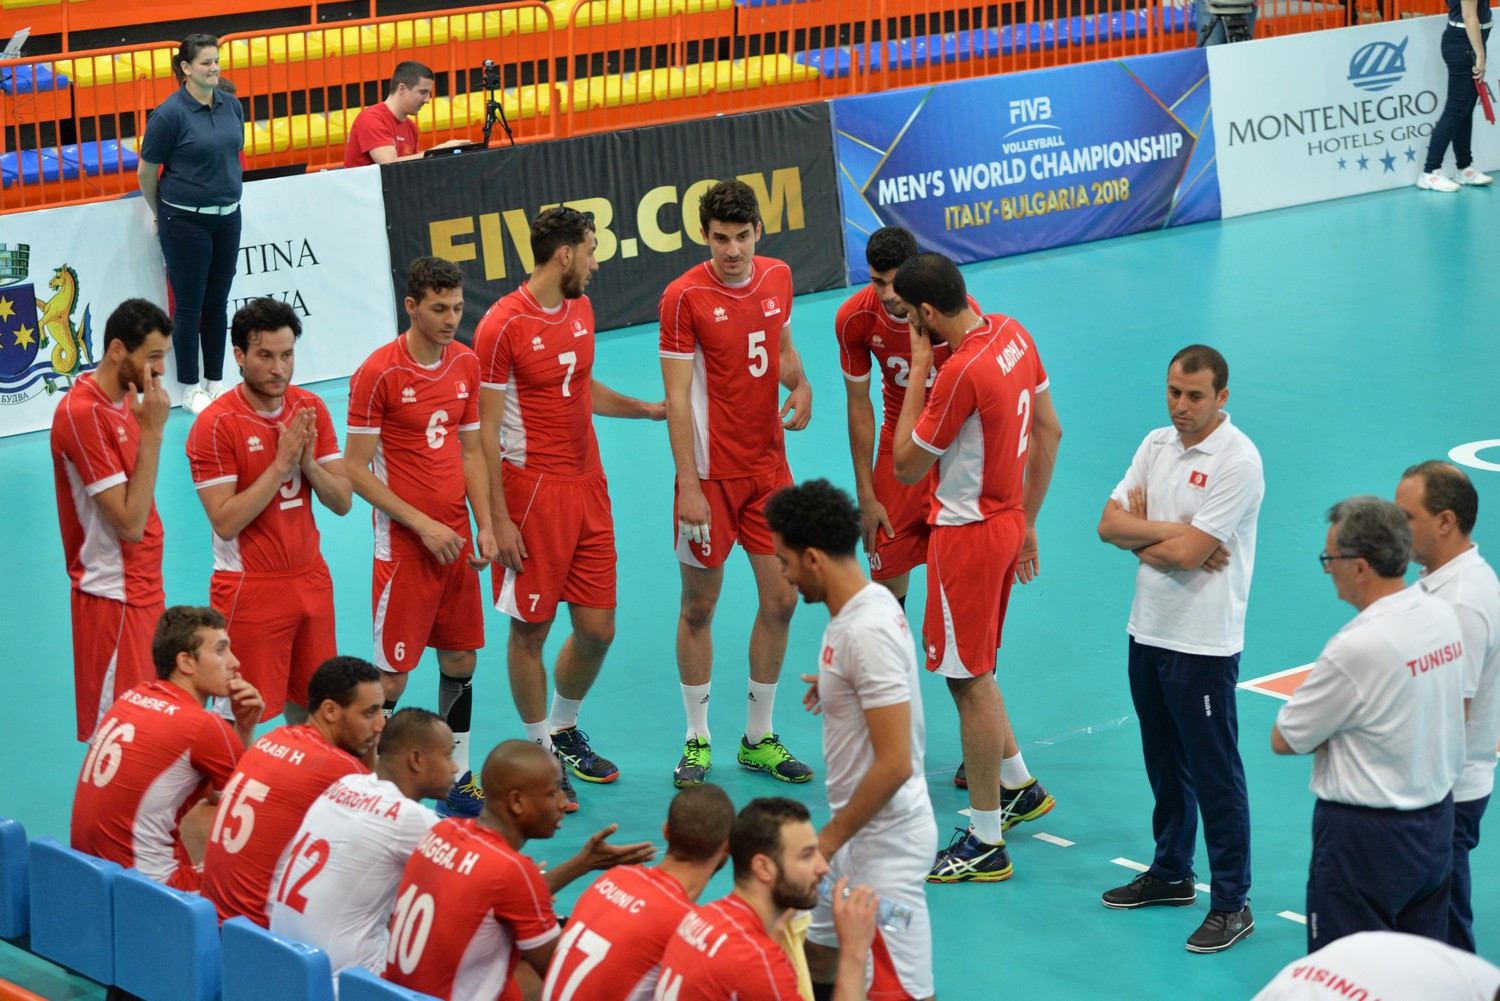 Tunisia are aiming for their 10th title at the African Men's Volleyball Championships ©FIVB